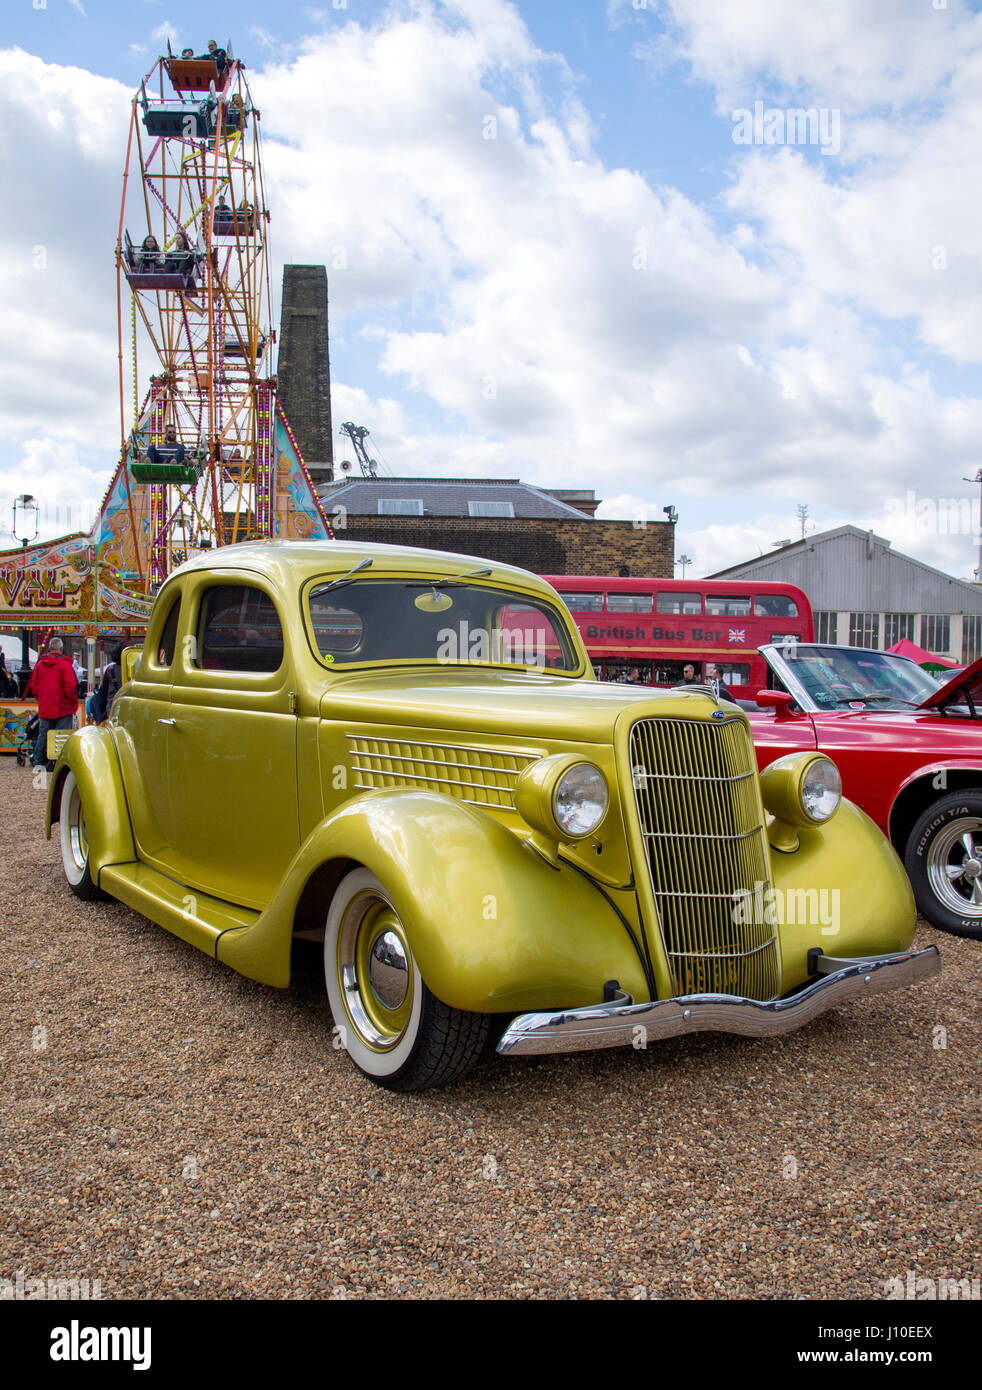 Chatham, Kent, UK. 16 April 2017. Hundreds of familys came to see classic and vintage cars, trucks, steam engines - Stock Image